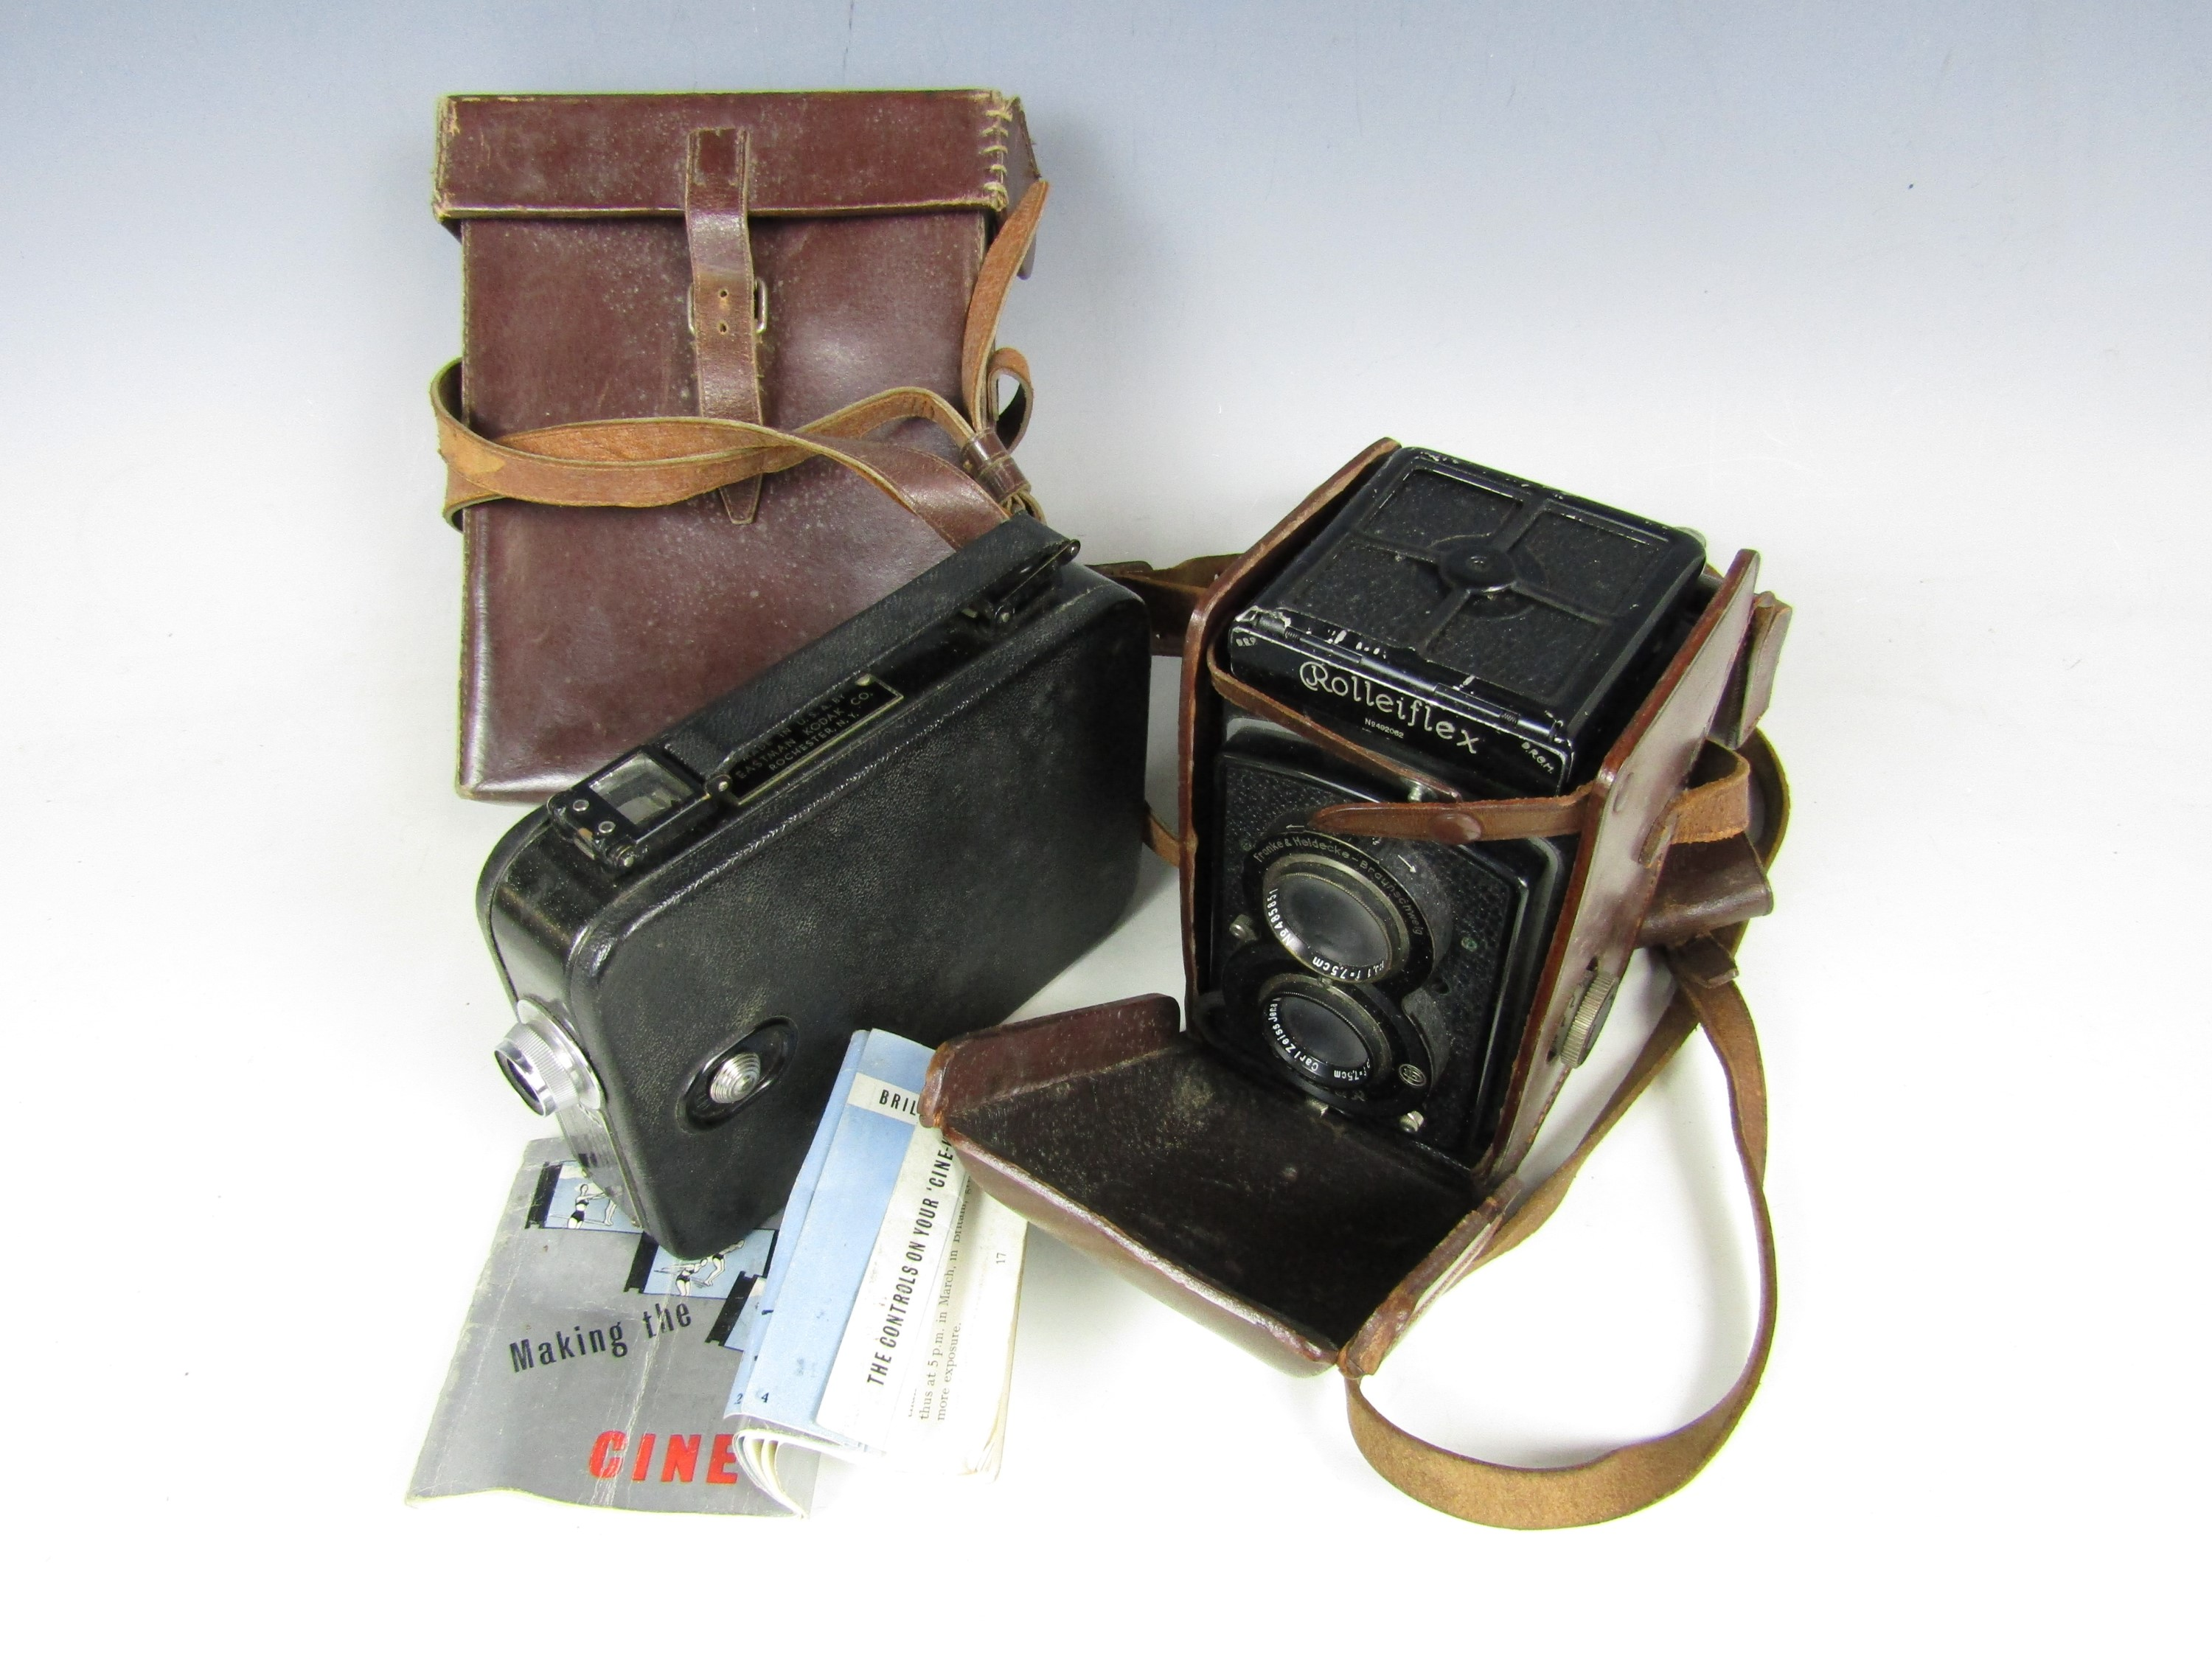 Lot 60 - A vintage Rolleiflex camera together with a Cine-Kodak Eight Model 20 camera with case and